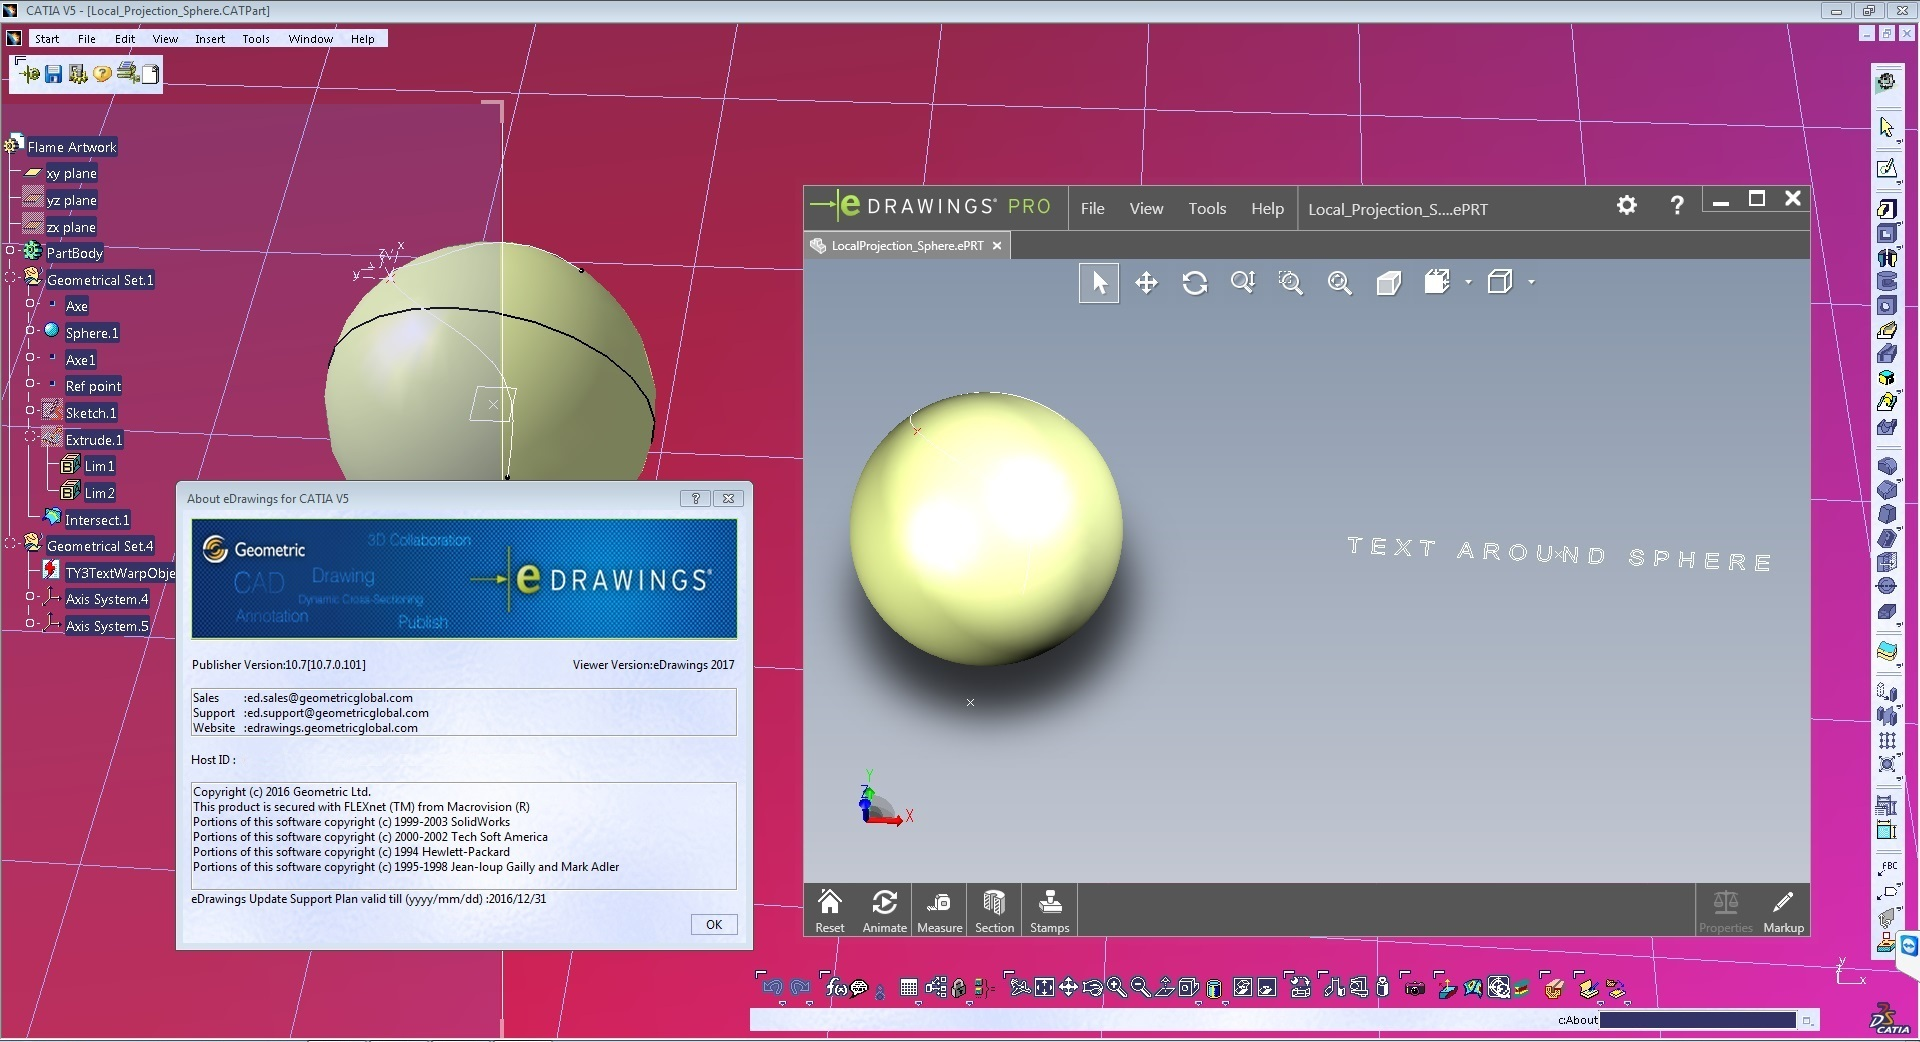 eDrawings Pro 2017 Suite for CATIA V5 R2016